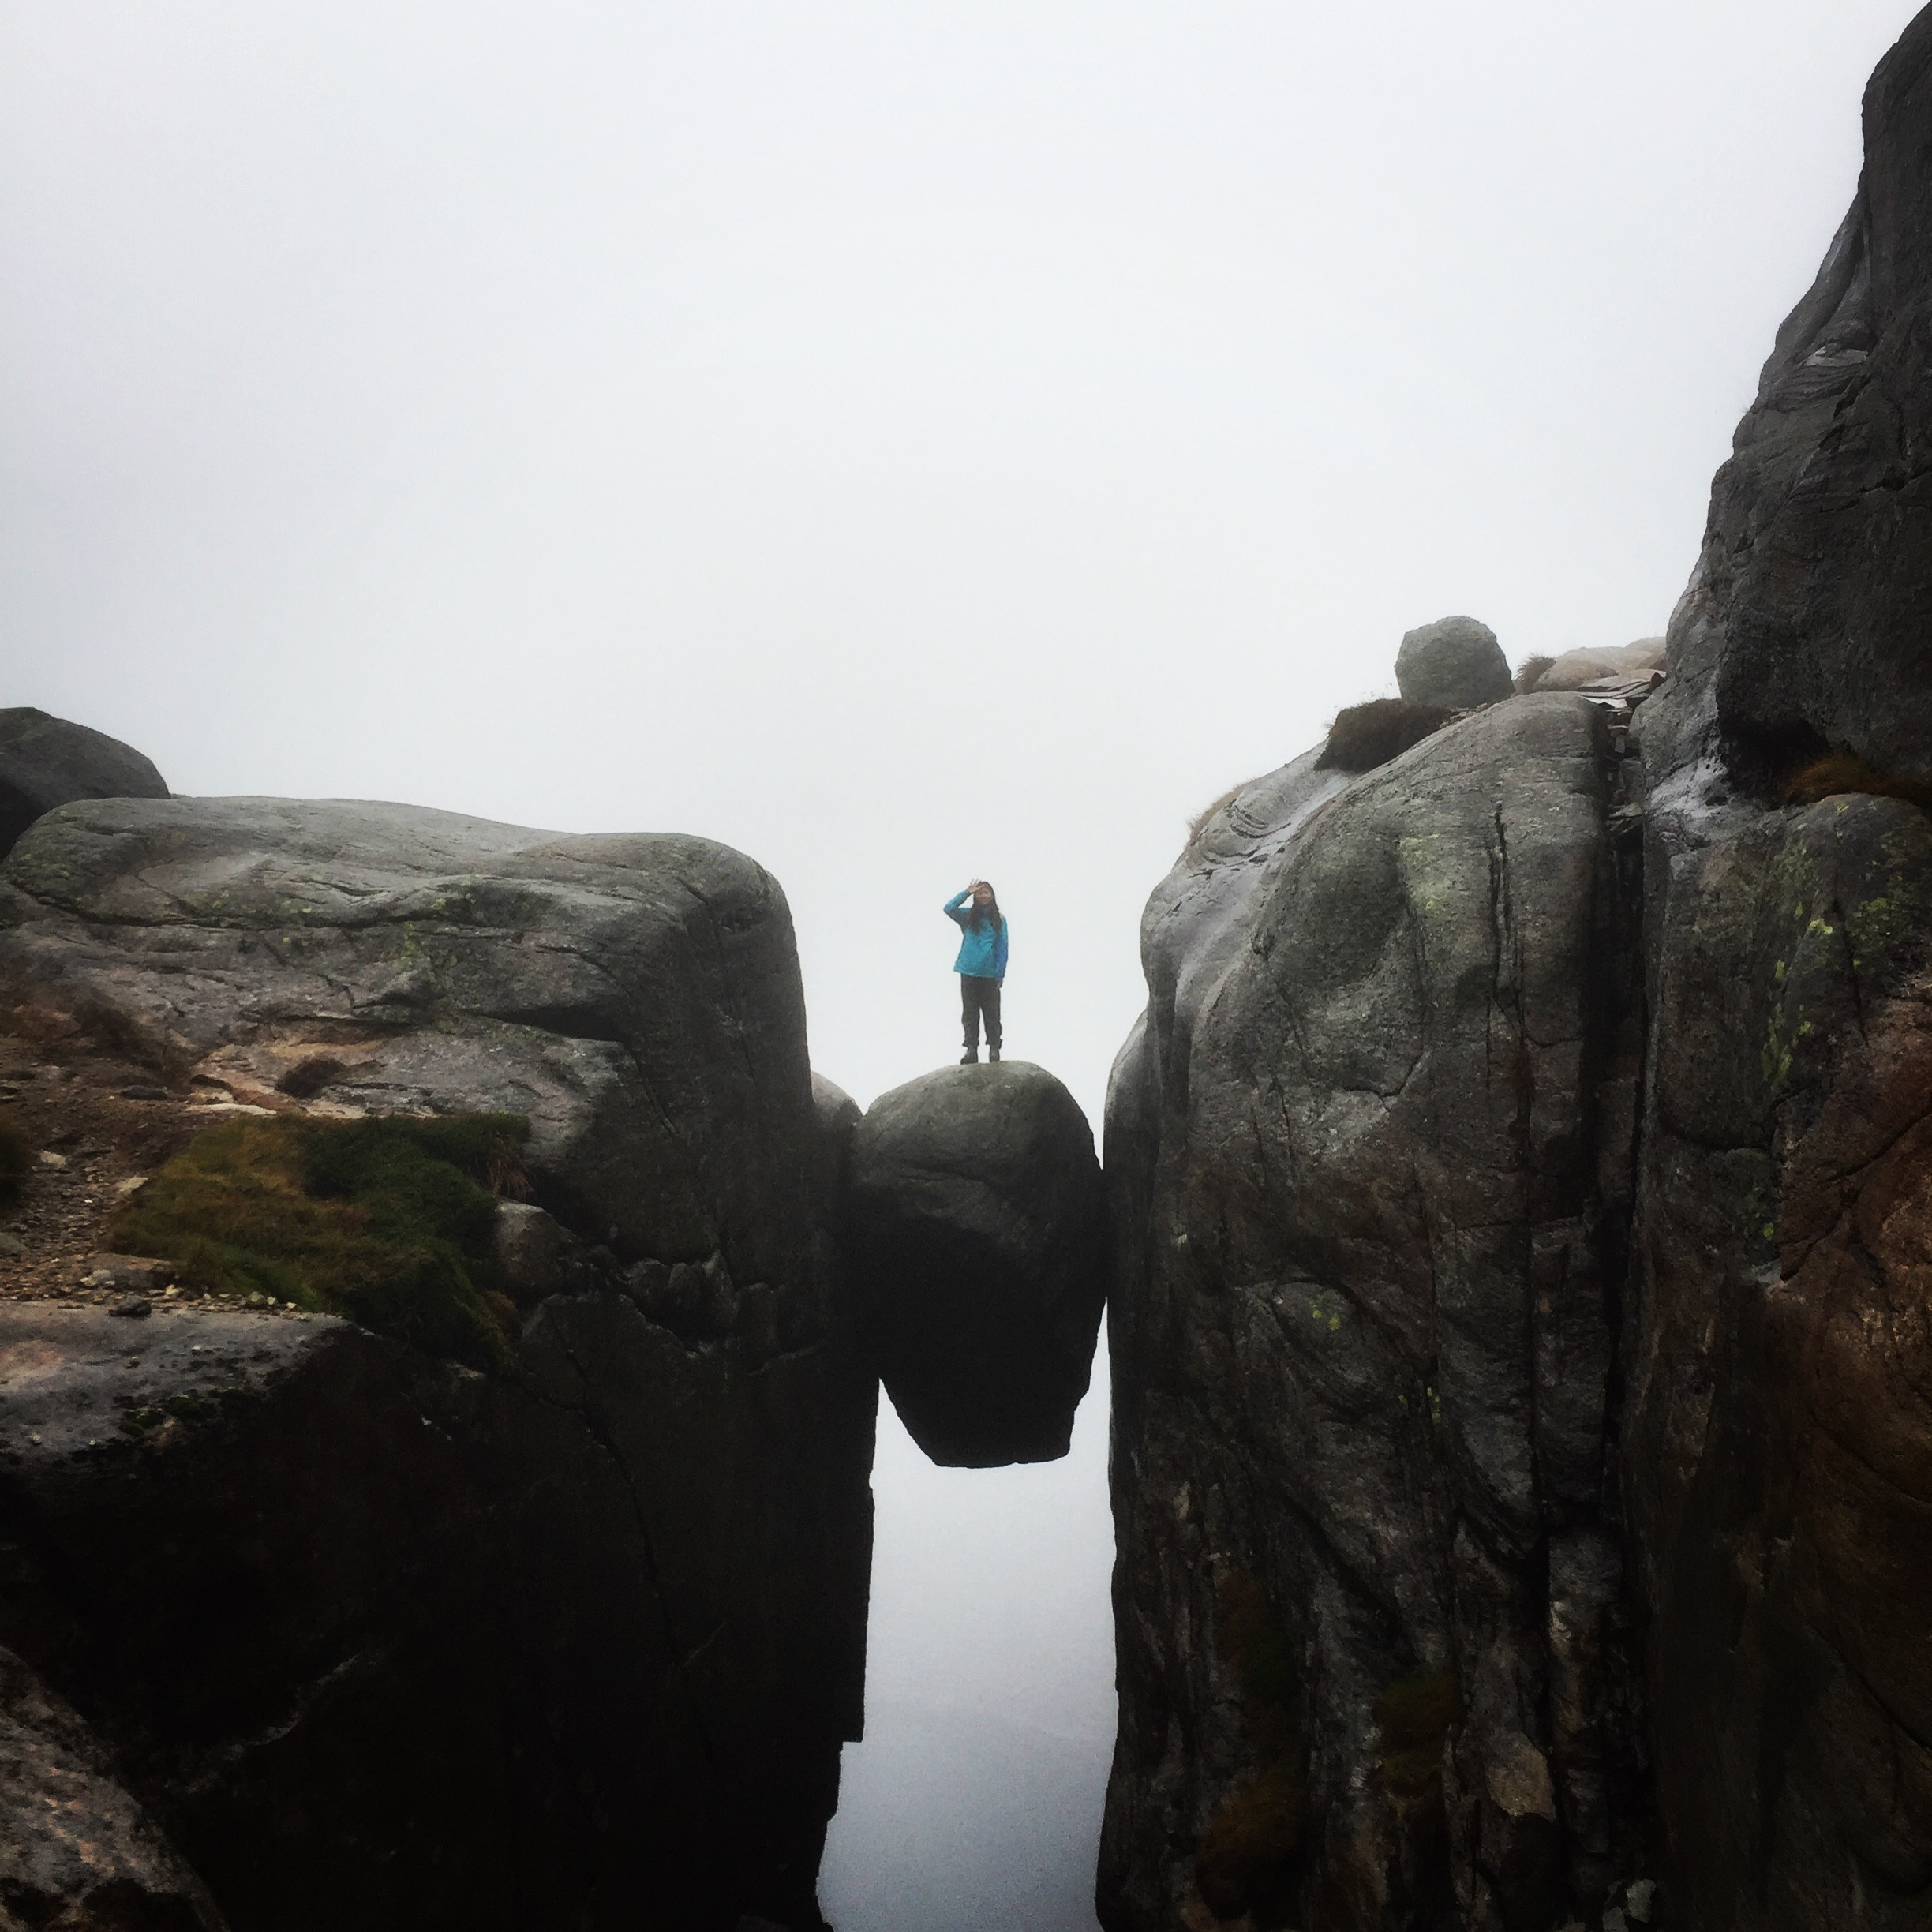 Person standing on the rock formation  Kjerag Bolt, about 700 meters above the fjord Lysefjorden